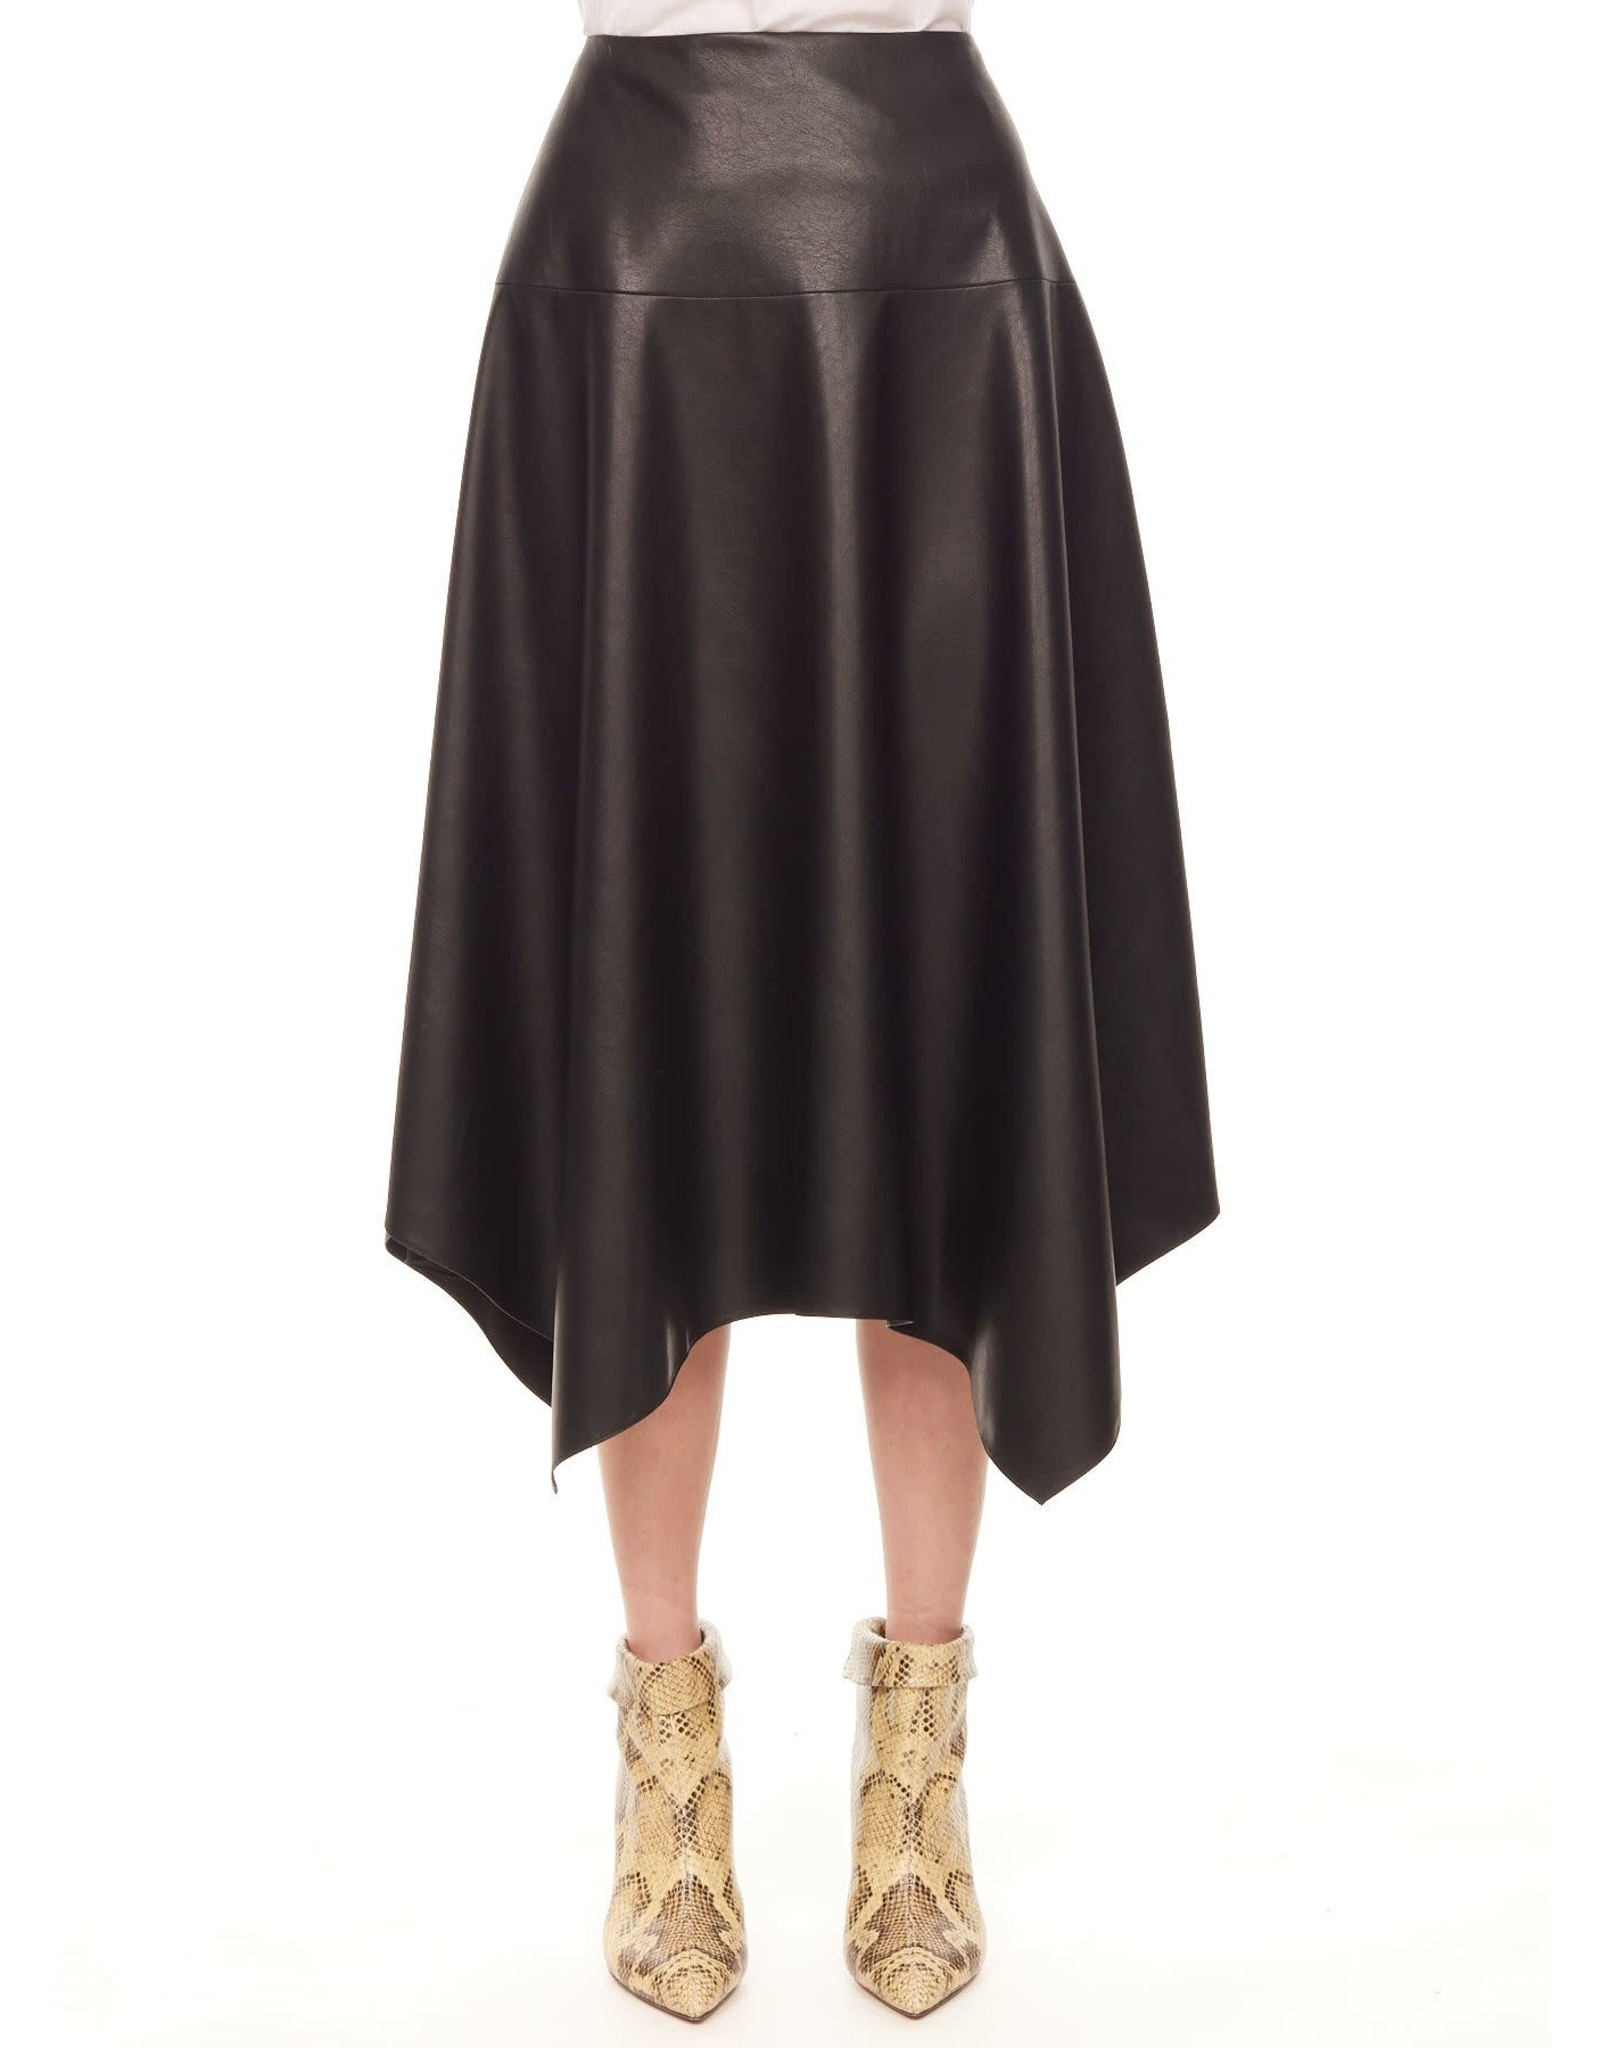 REBECCA TAYLOR Vegan Leather Skirt Size 10